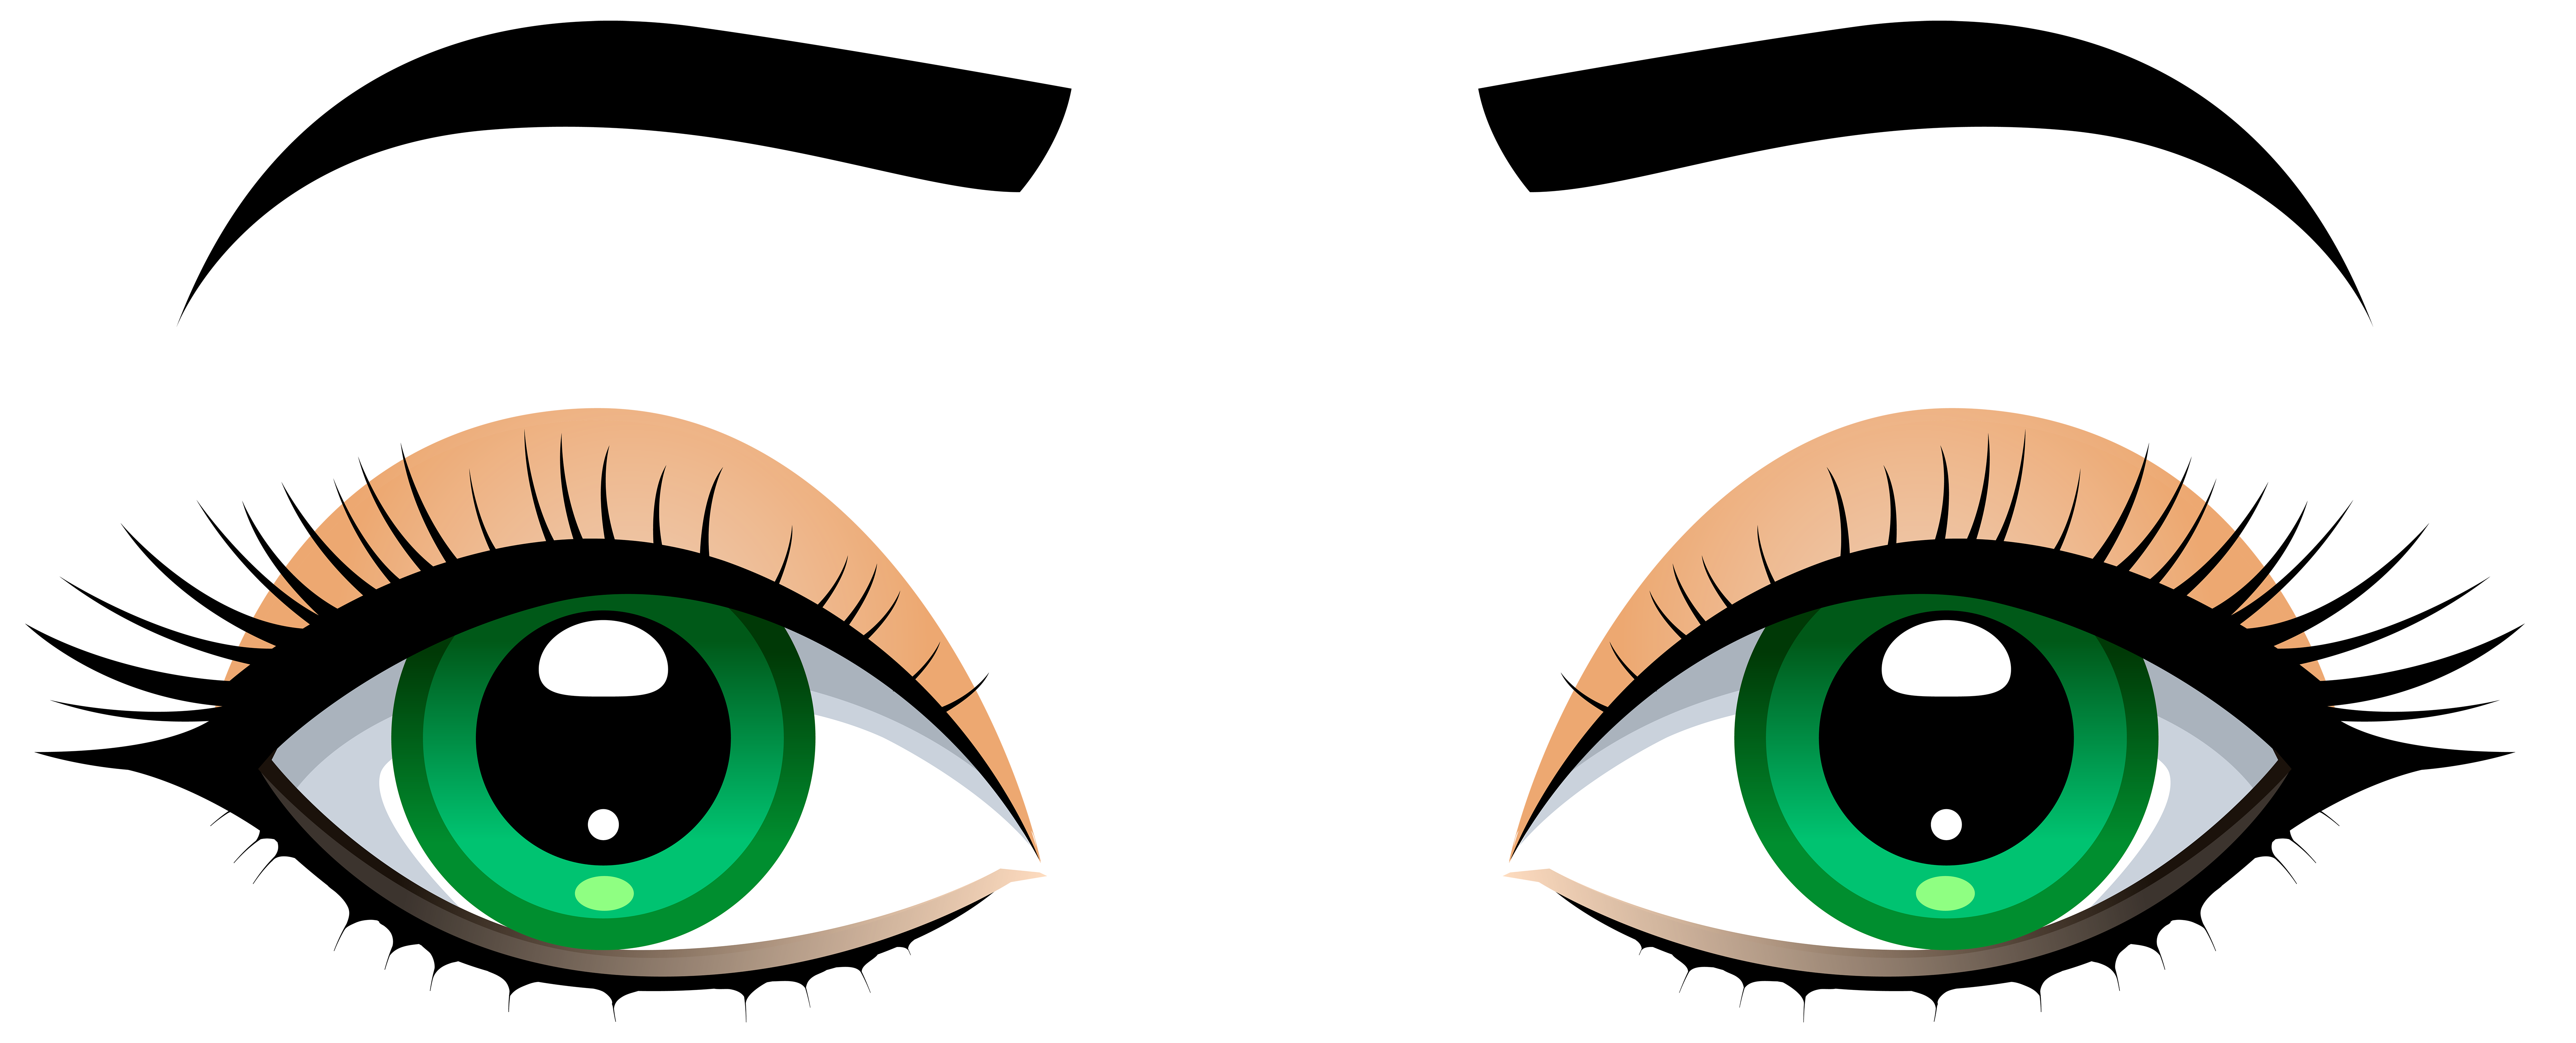 Eyes with eyebrows png. Eye clip female image free download